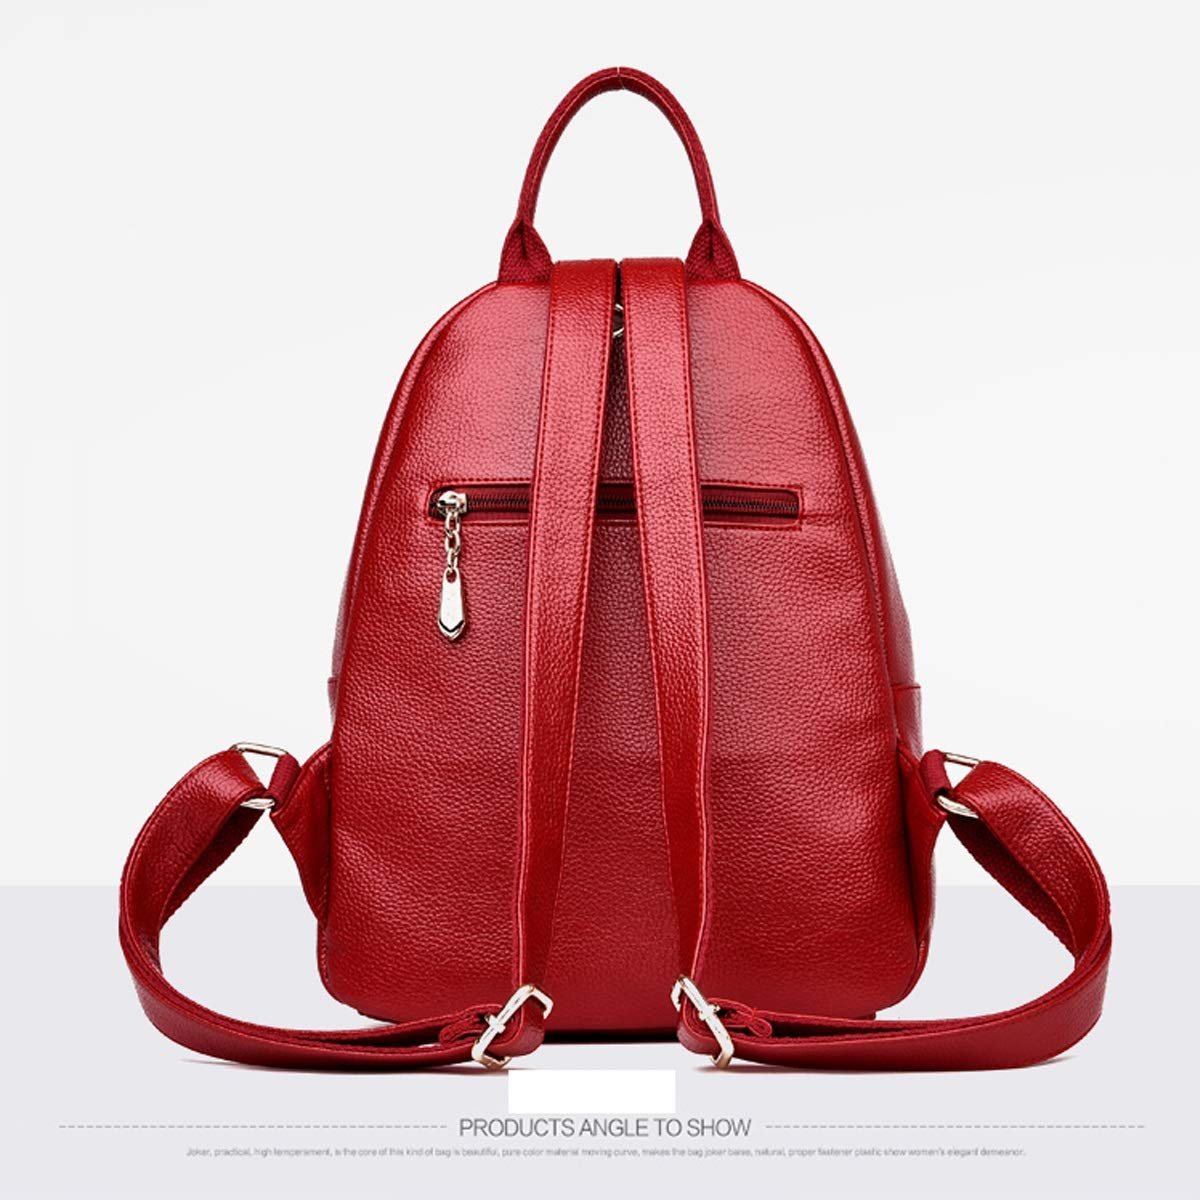 Five Colors PU Leather Stylish and Large Capacity. Haoyushangmao Girls Multi-Purpose Backpack for Everyday Travel//Outdoor//Travel//School//Work//Fashion//Leisure